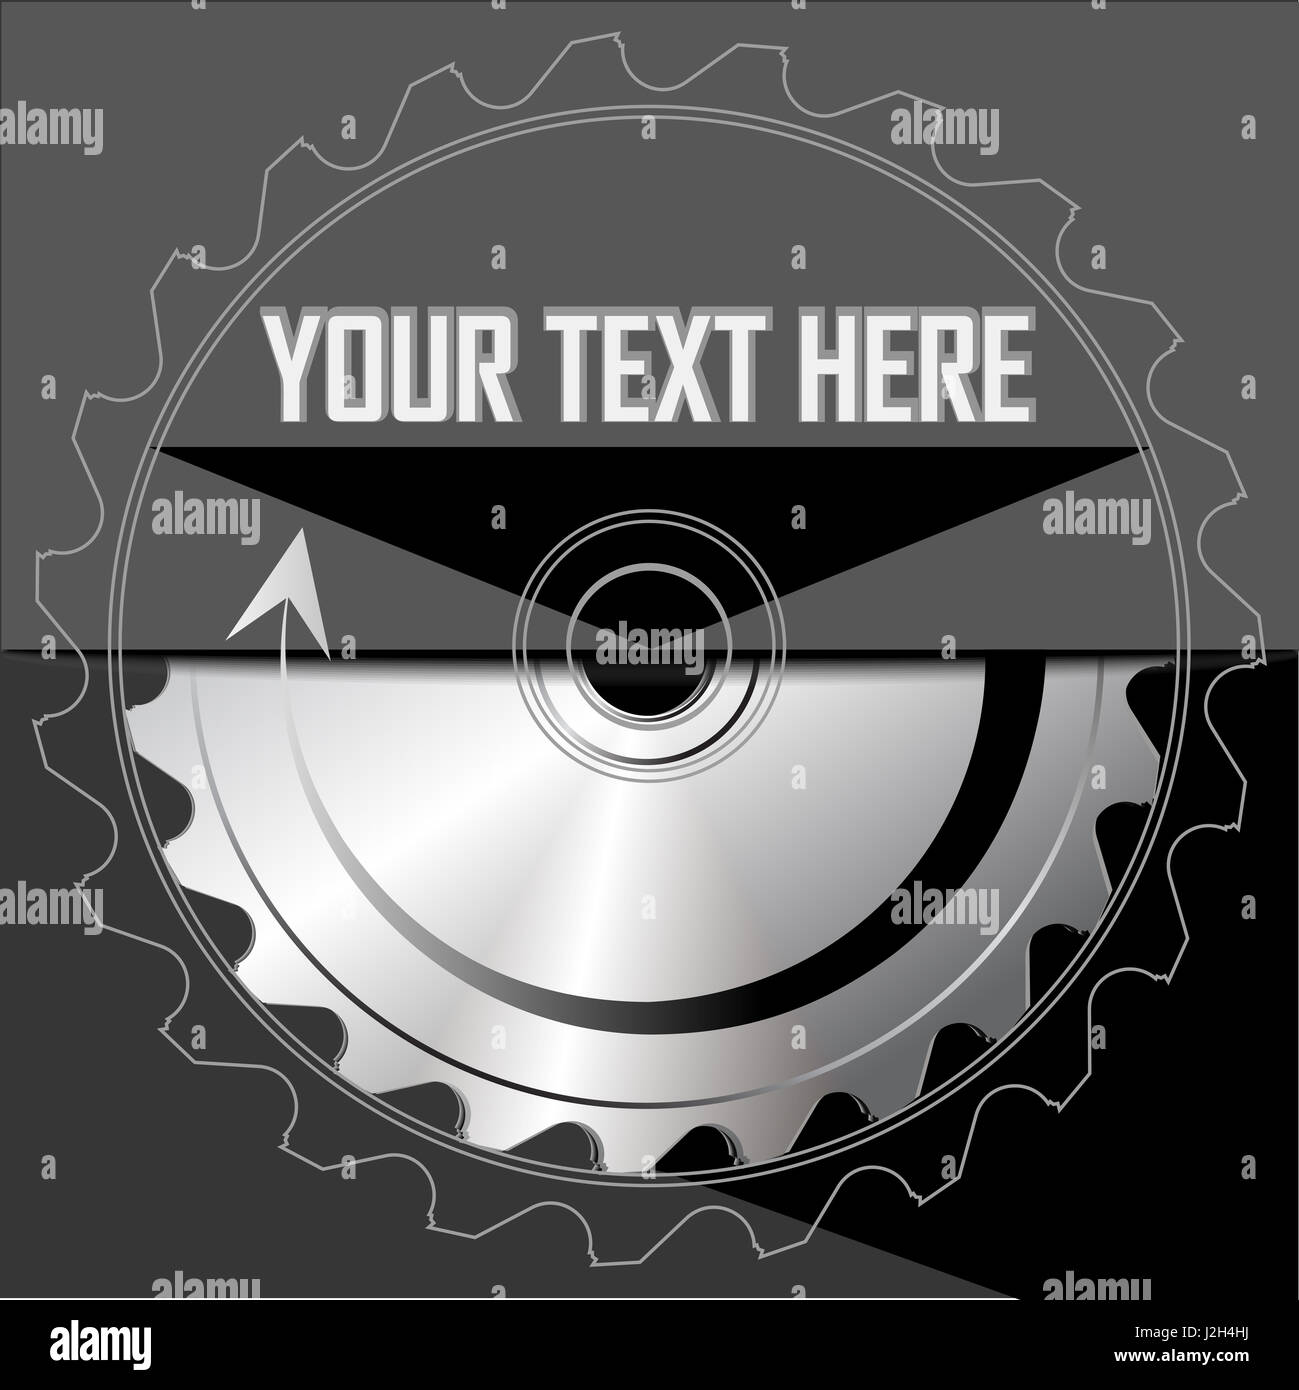 Circular saw blade on the dark background. Place for text. Vector illustration - Stock Image